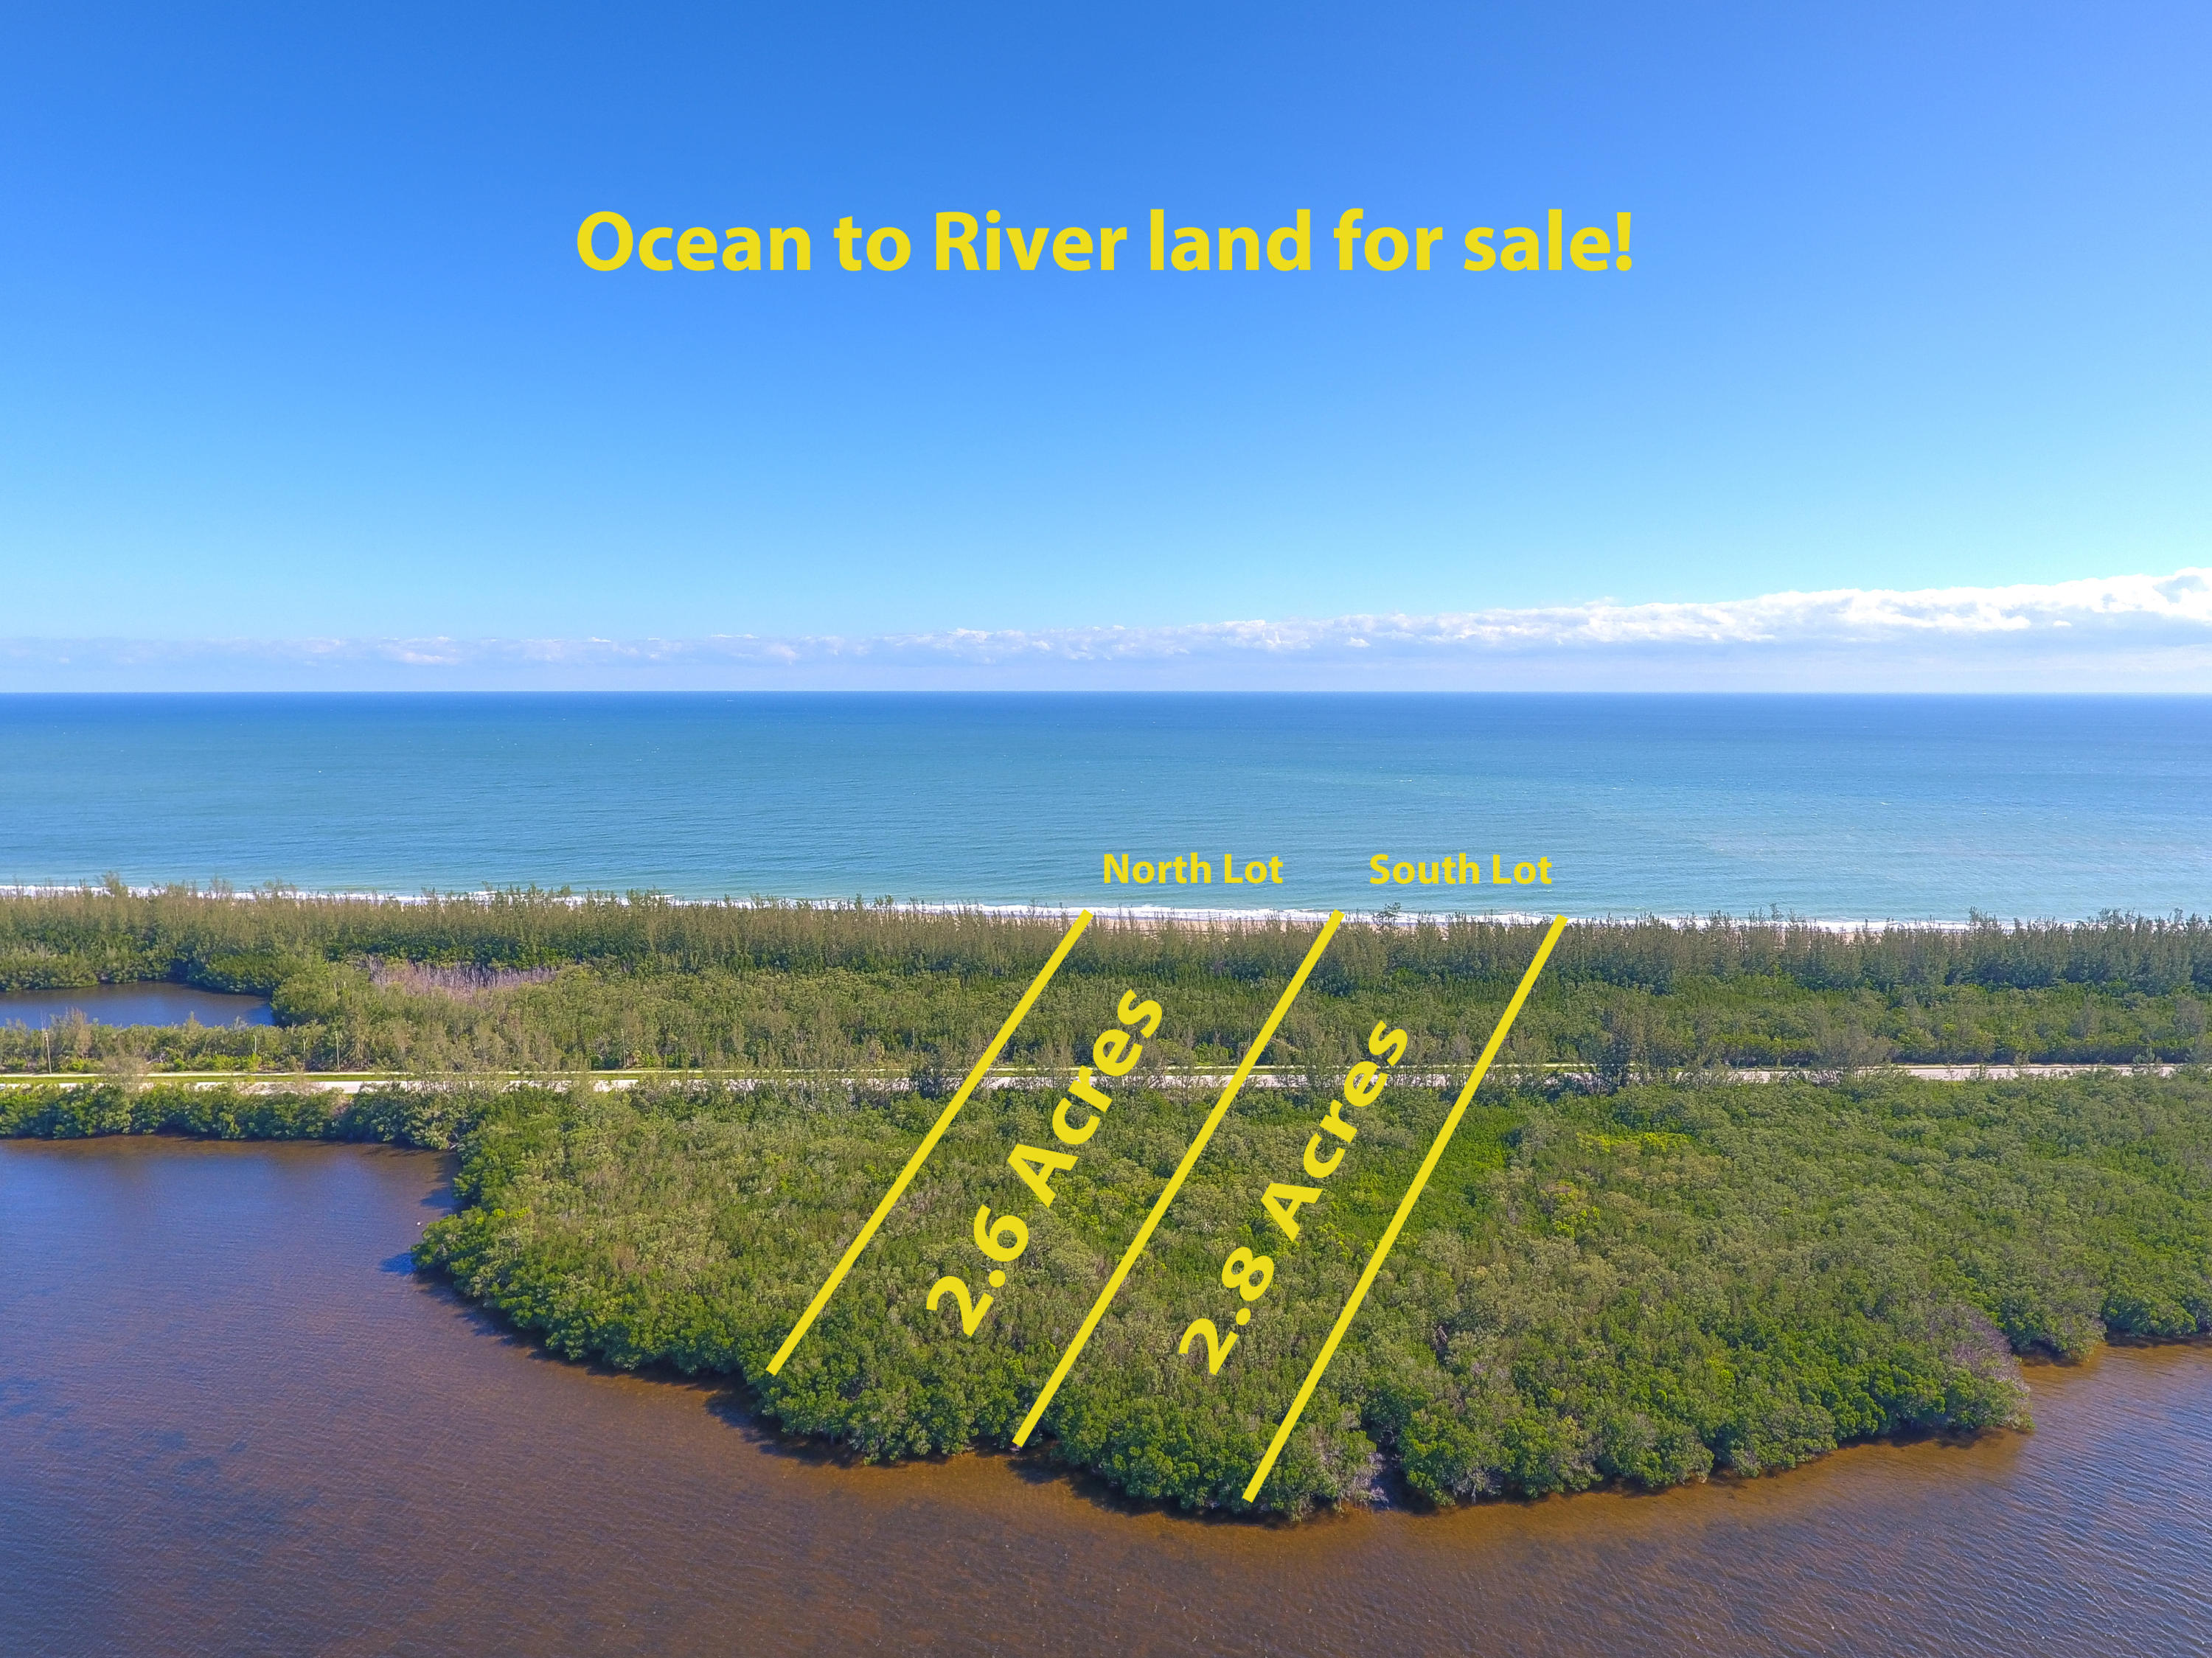 Compra di terreno in S Ocean Drive (South Lot), Fort Pierce, Florida ,34949